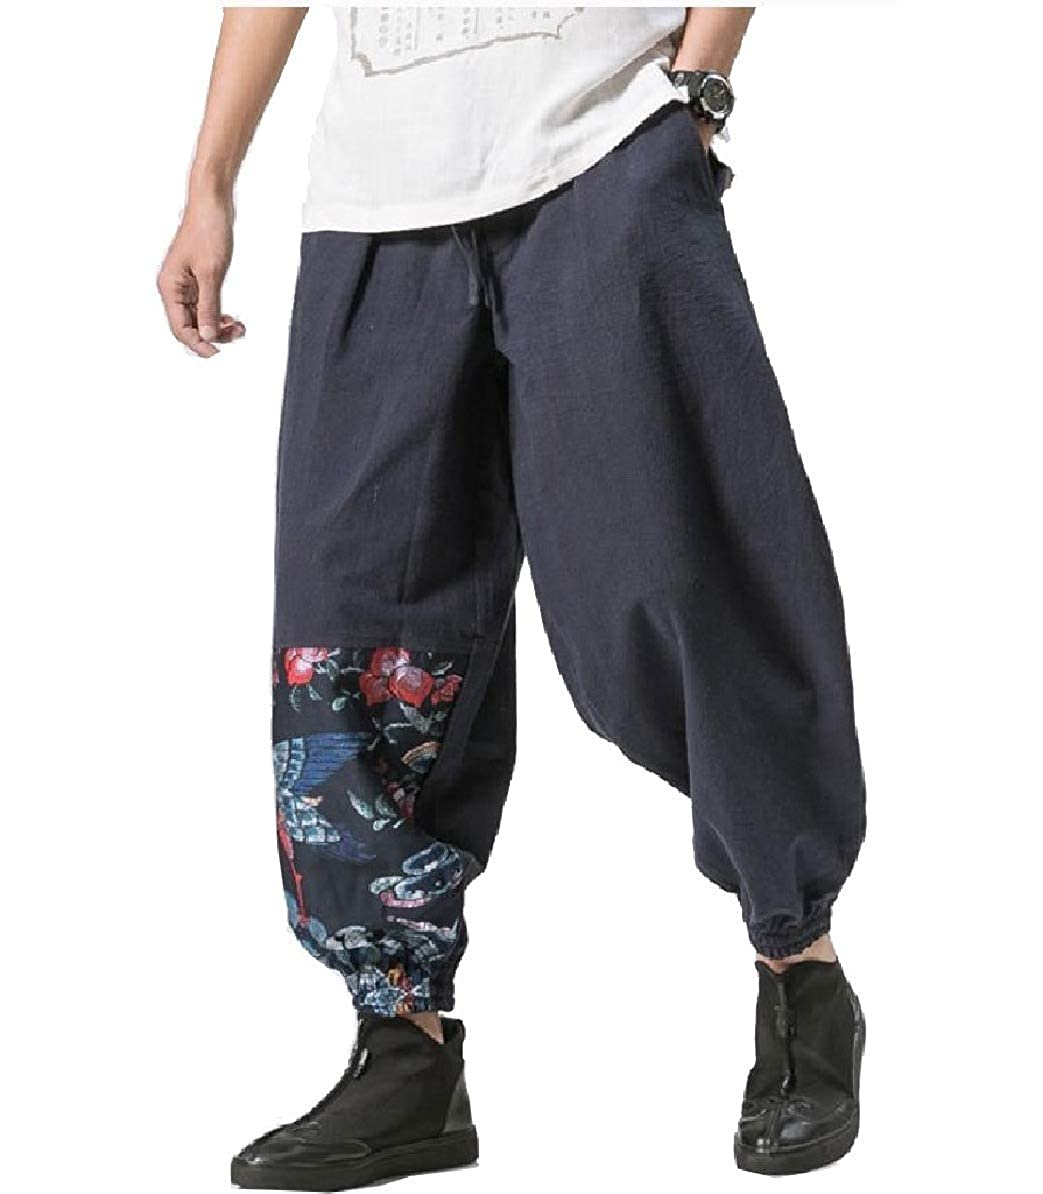 Comaba Mens Patchwork Hippie Beam Foot Trousers Ethnic Style Harem Ankle Pants